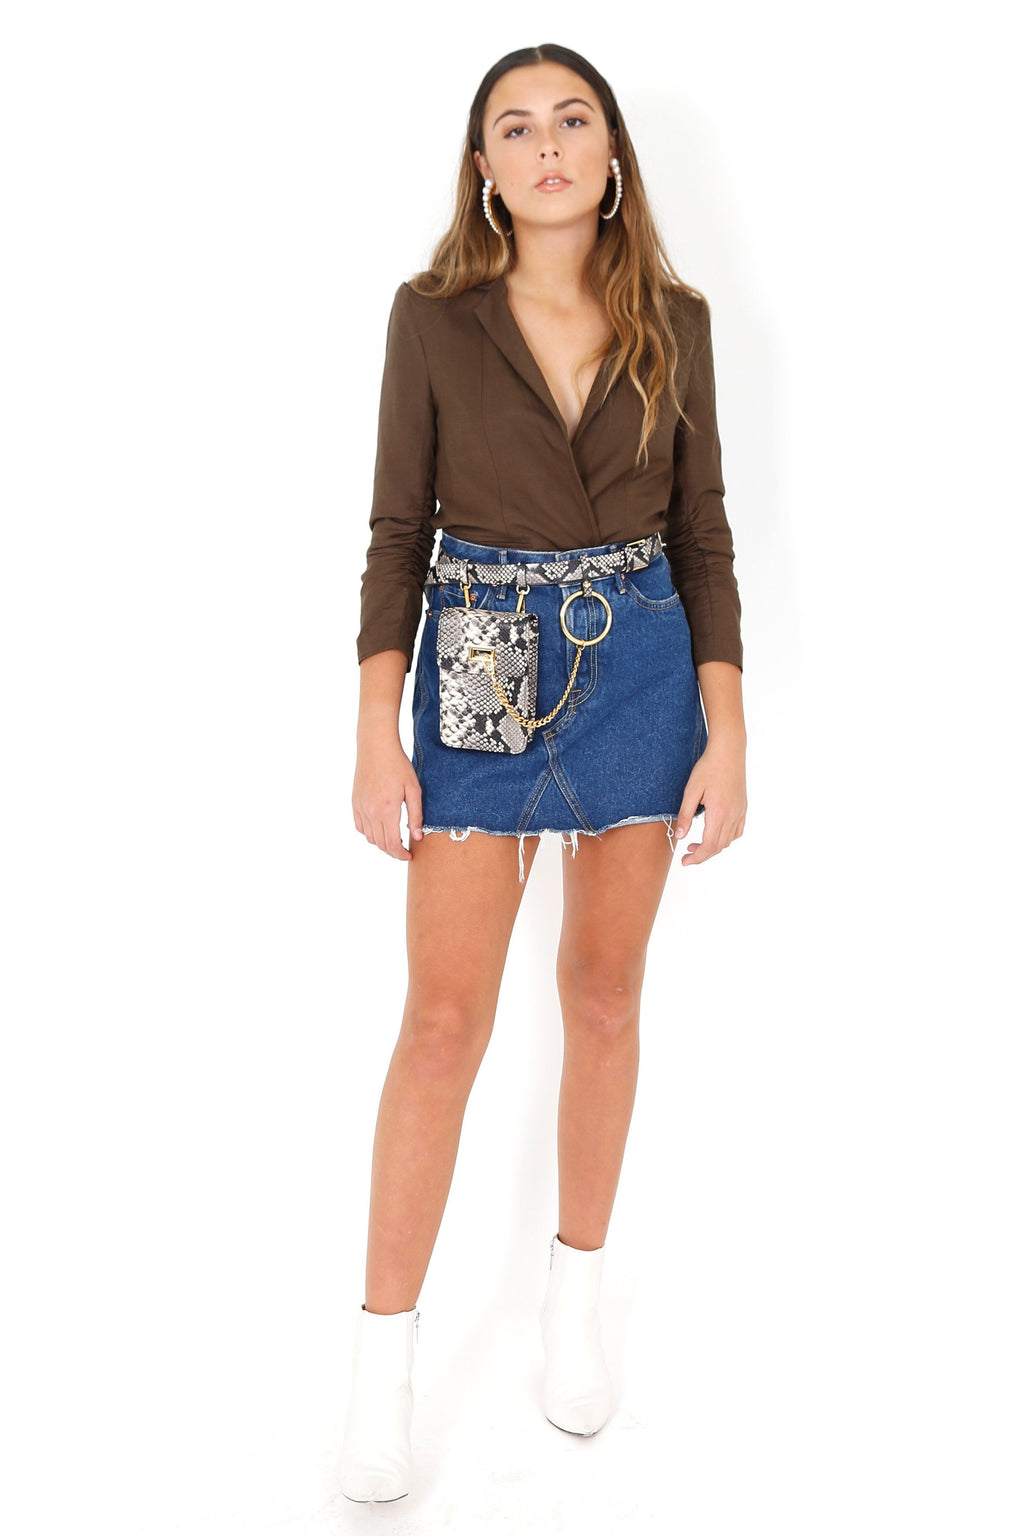 GRLFRND | Eva Denim Skirt - Tonight Its You